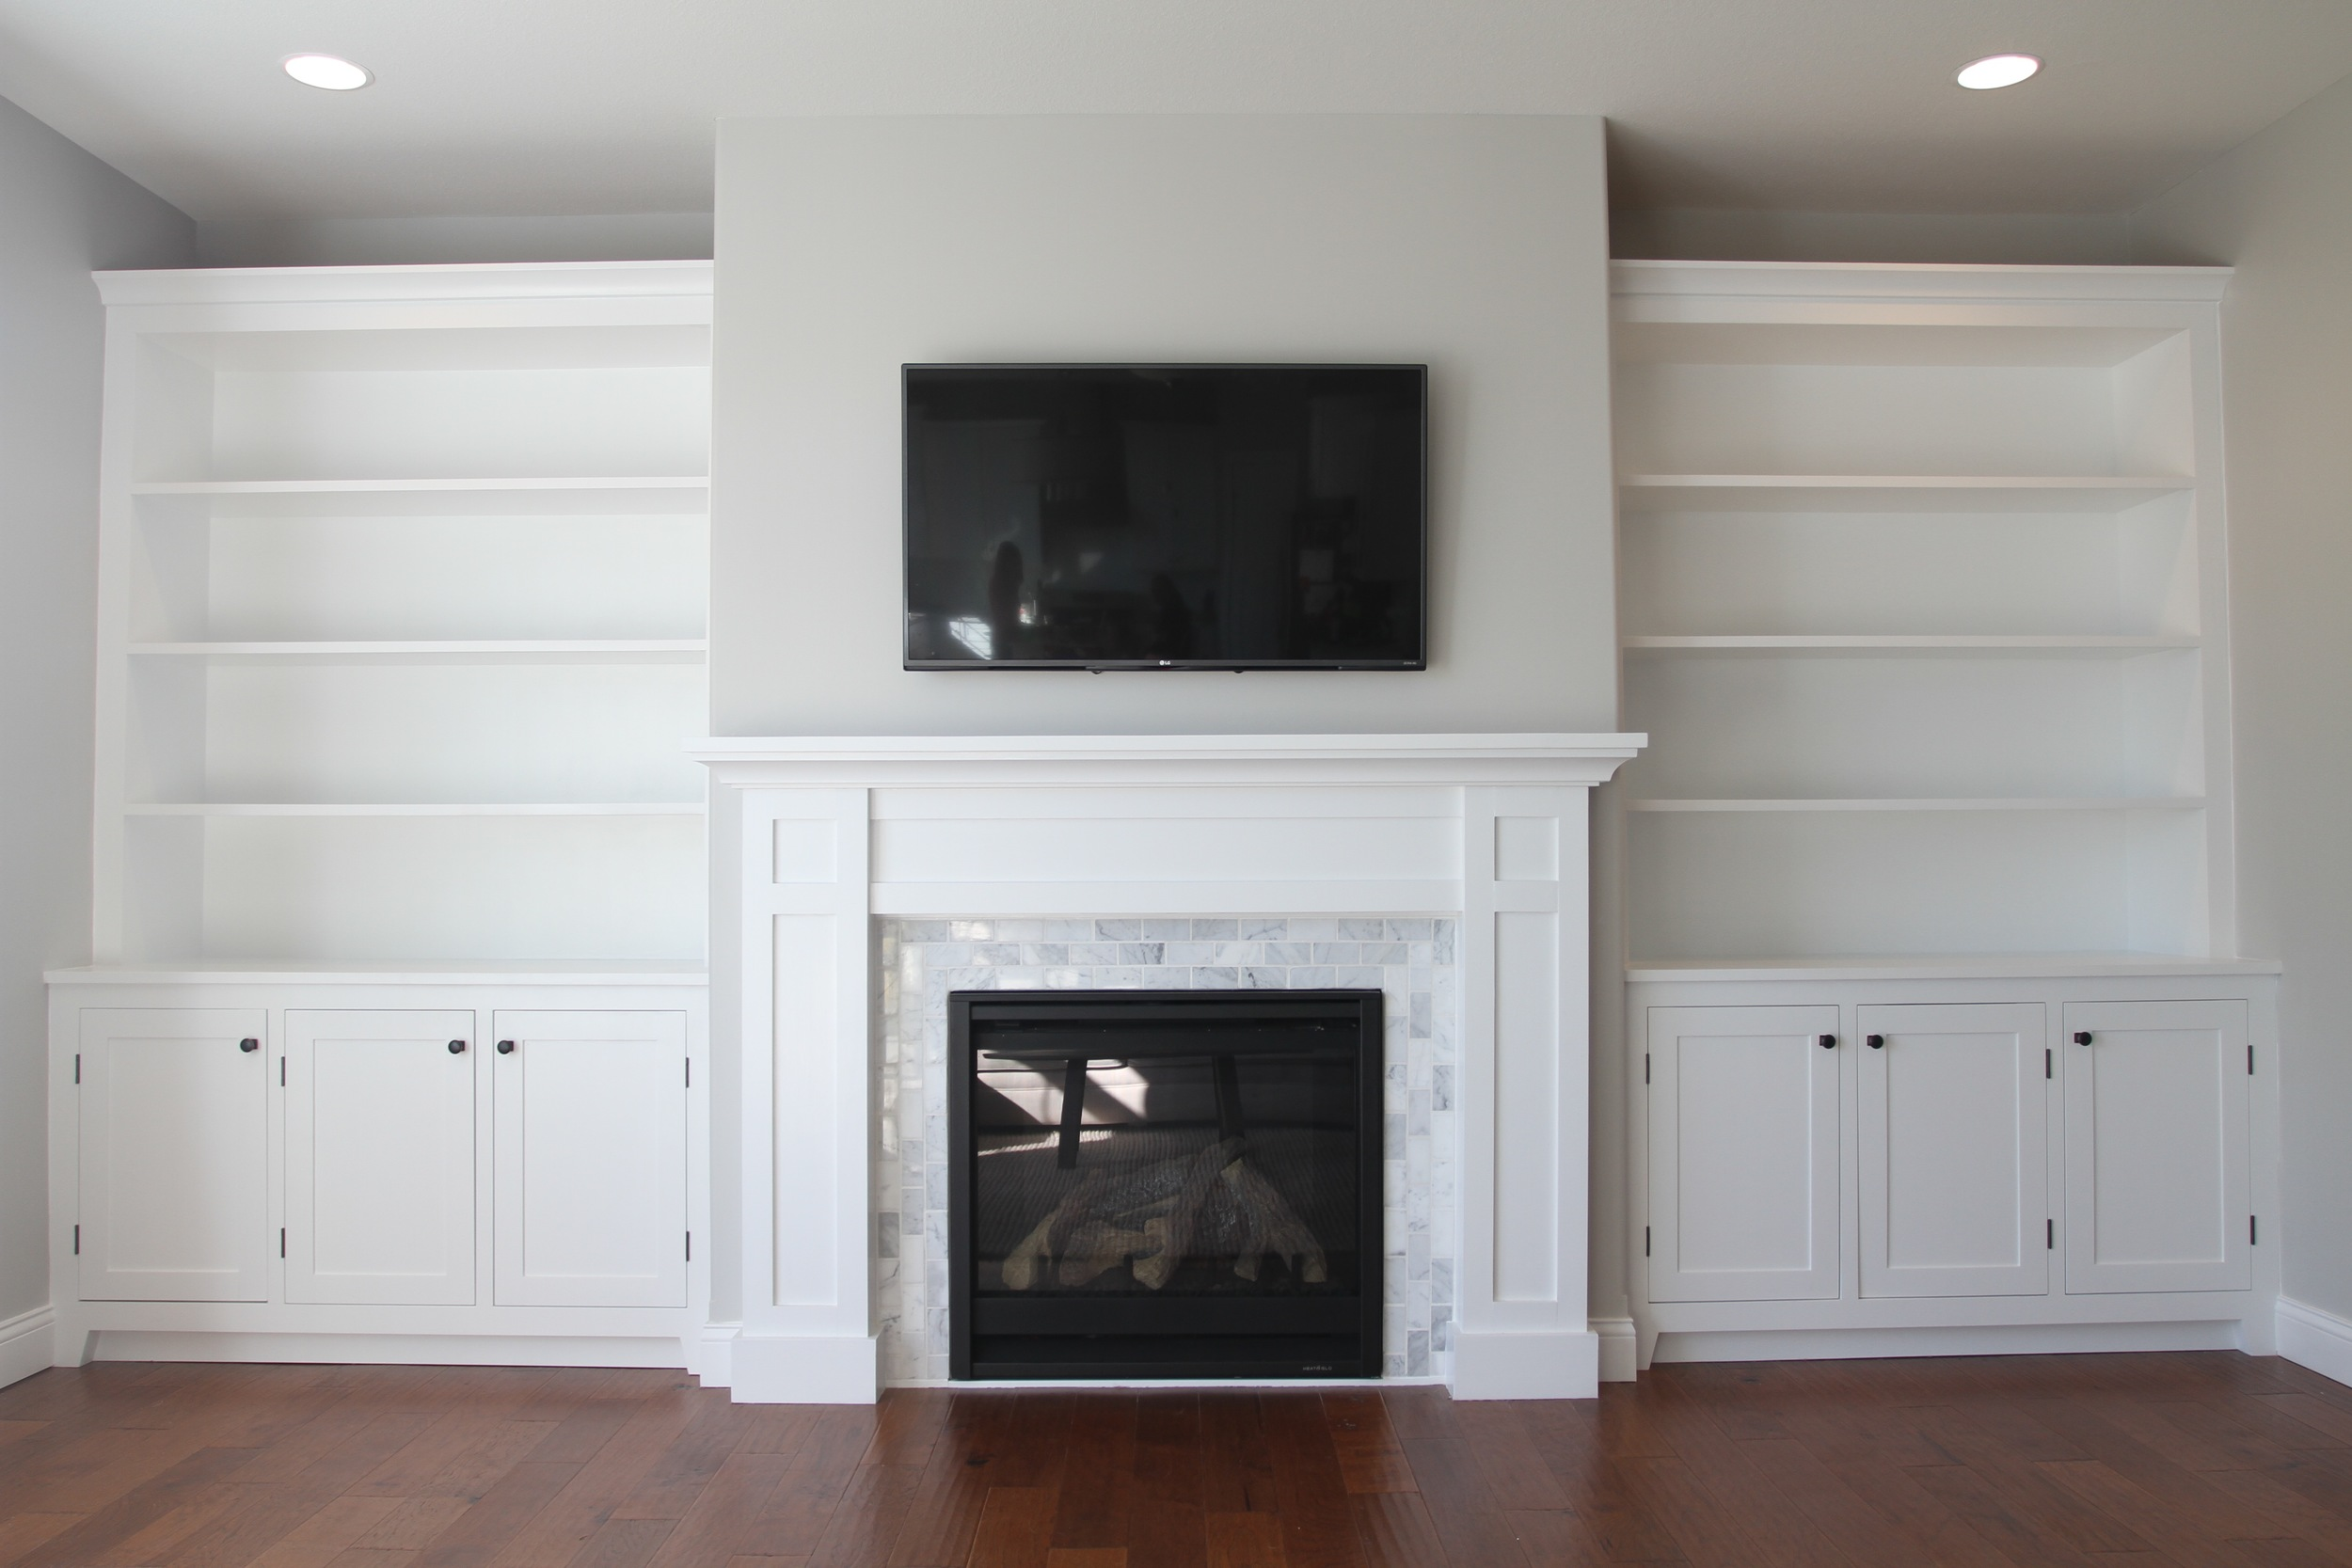 how to build a built in the cabinets woodworking philip miller rh philipmillerfurniture com how to build built in kitchen cabinets how to build built in cabinets and shelves